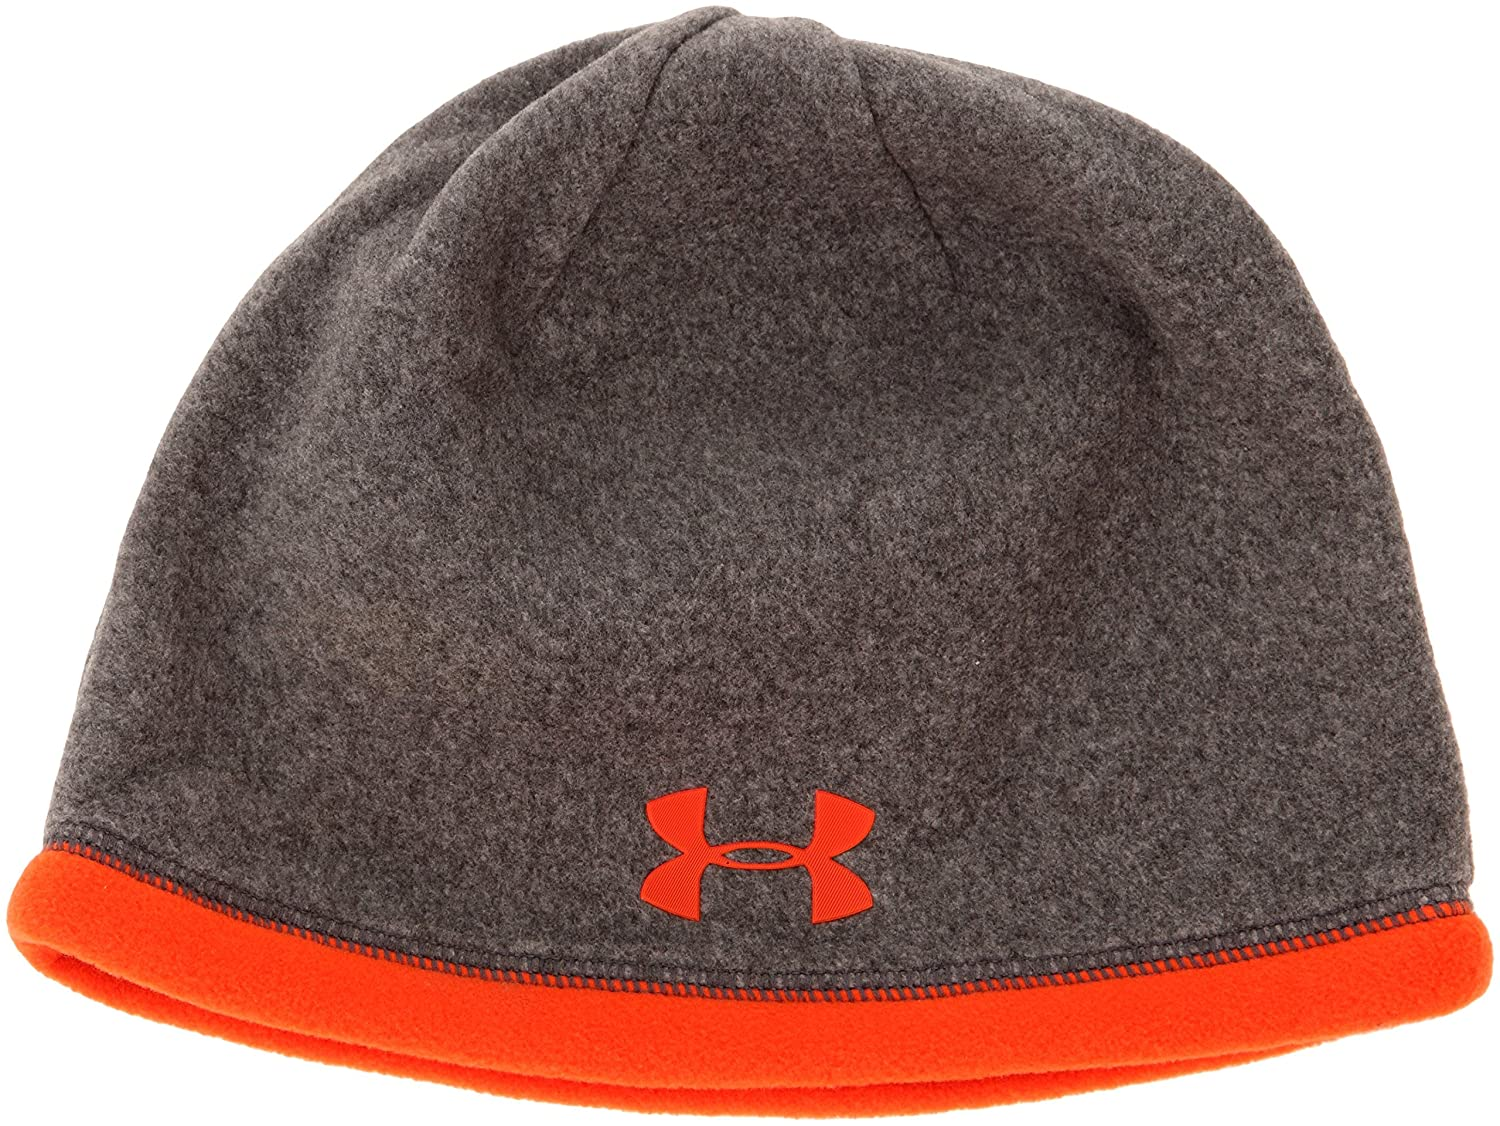 Amazon.com  Under Armour ColdGear Infrared Elements Storm Beanie -  Heather Volcano  Sports   Outdoors 9d0a15243df